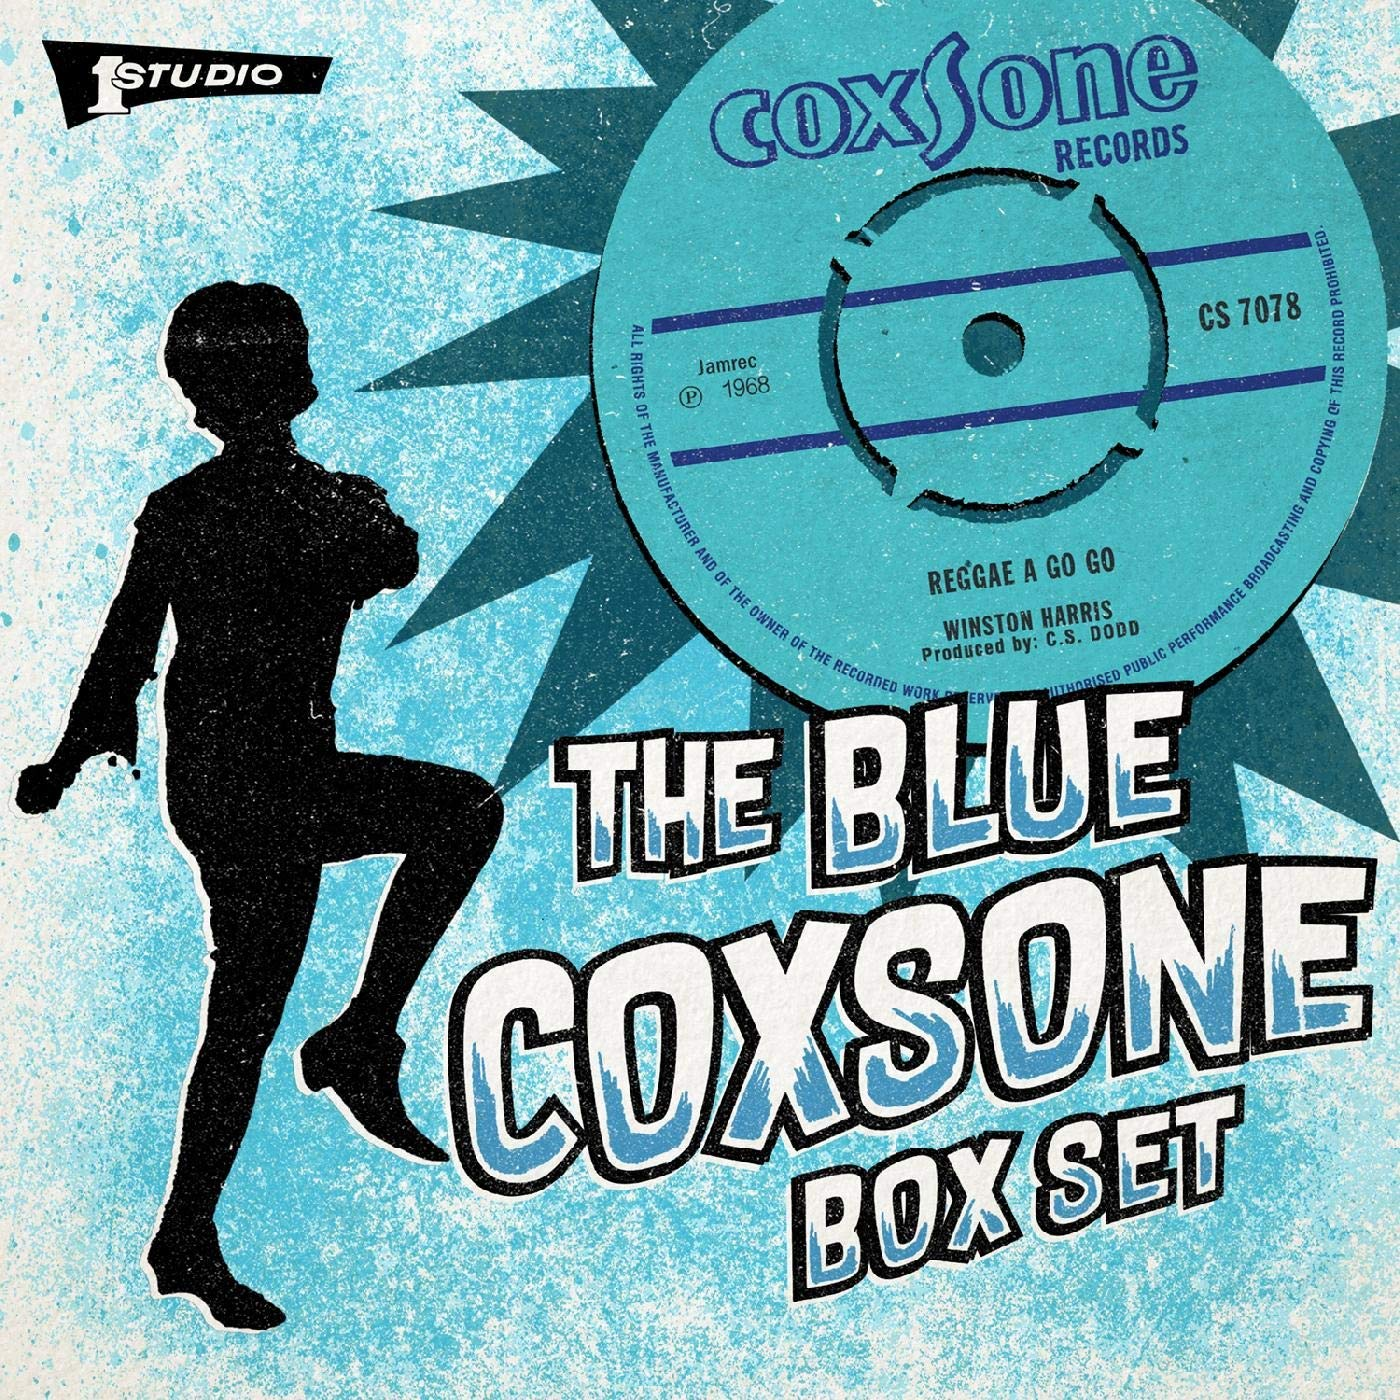 Various Artists - Blue Coxsone [6x7'' Boxset] - Urban Vinyl | Records, Headphones, and more.